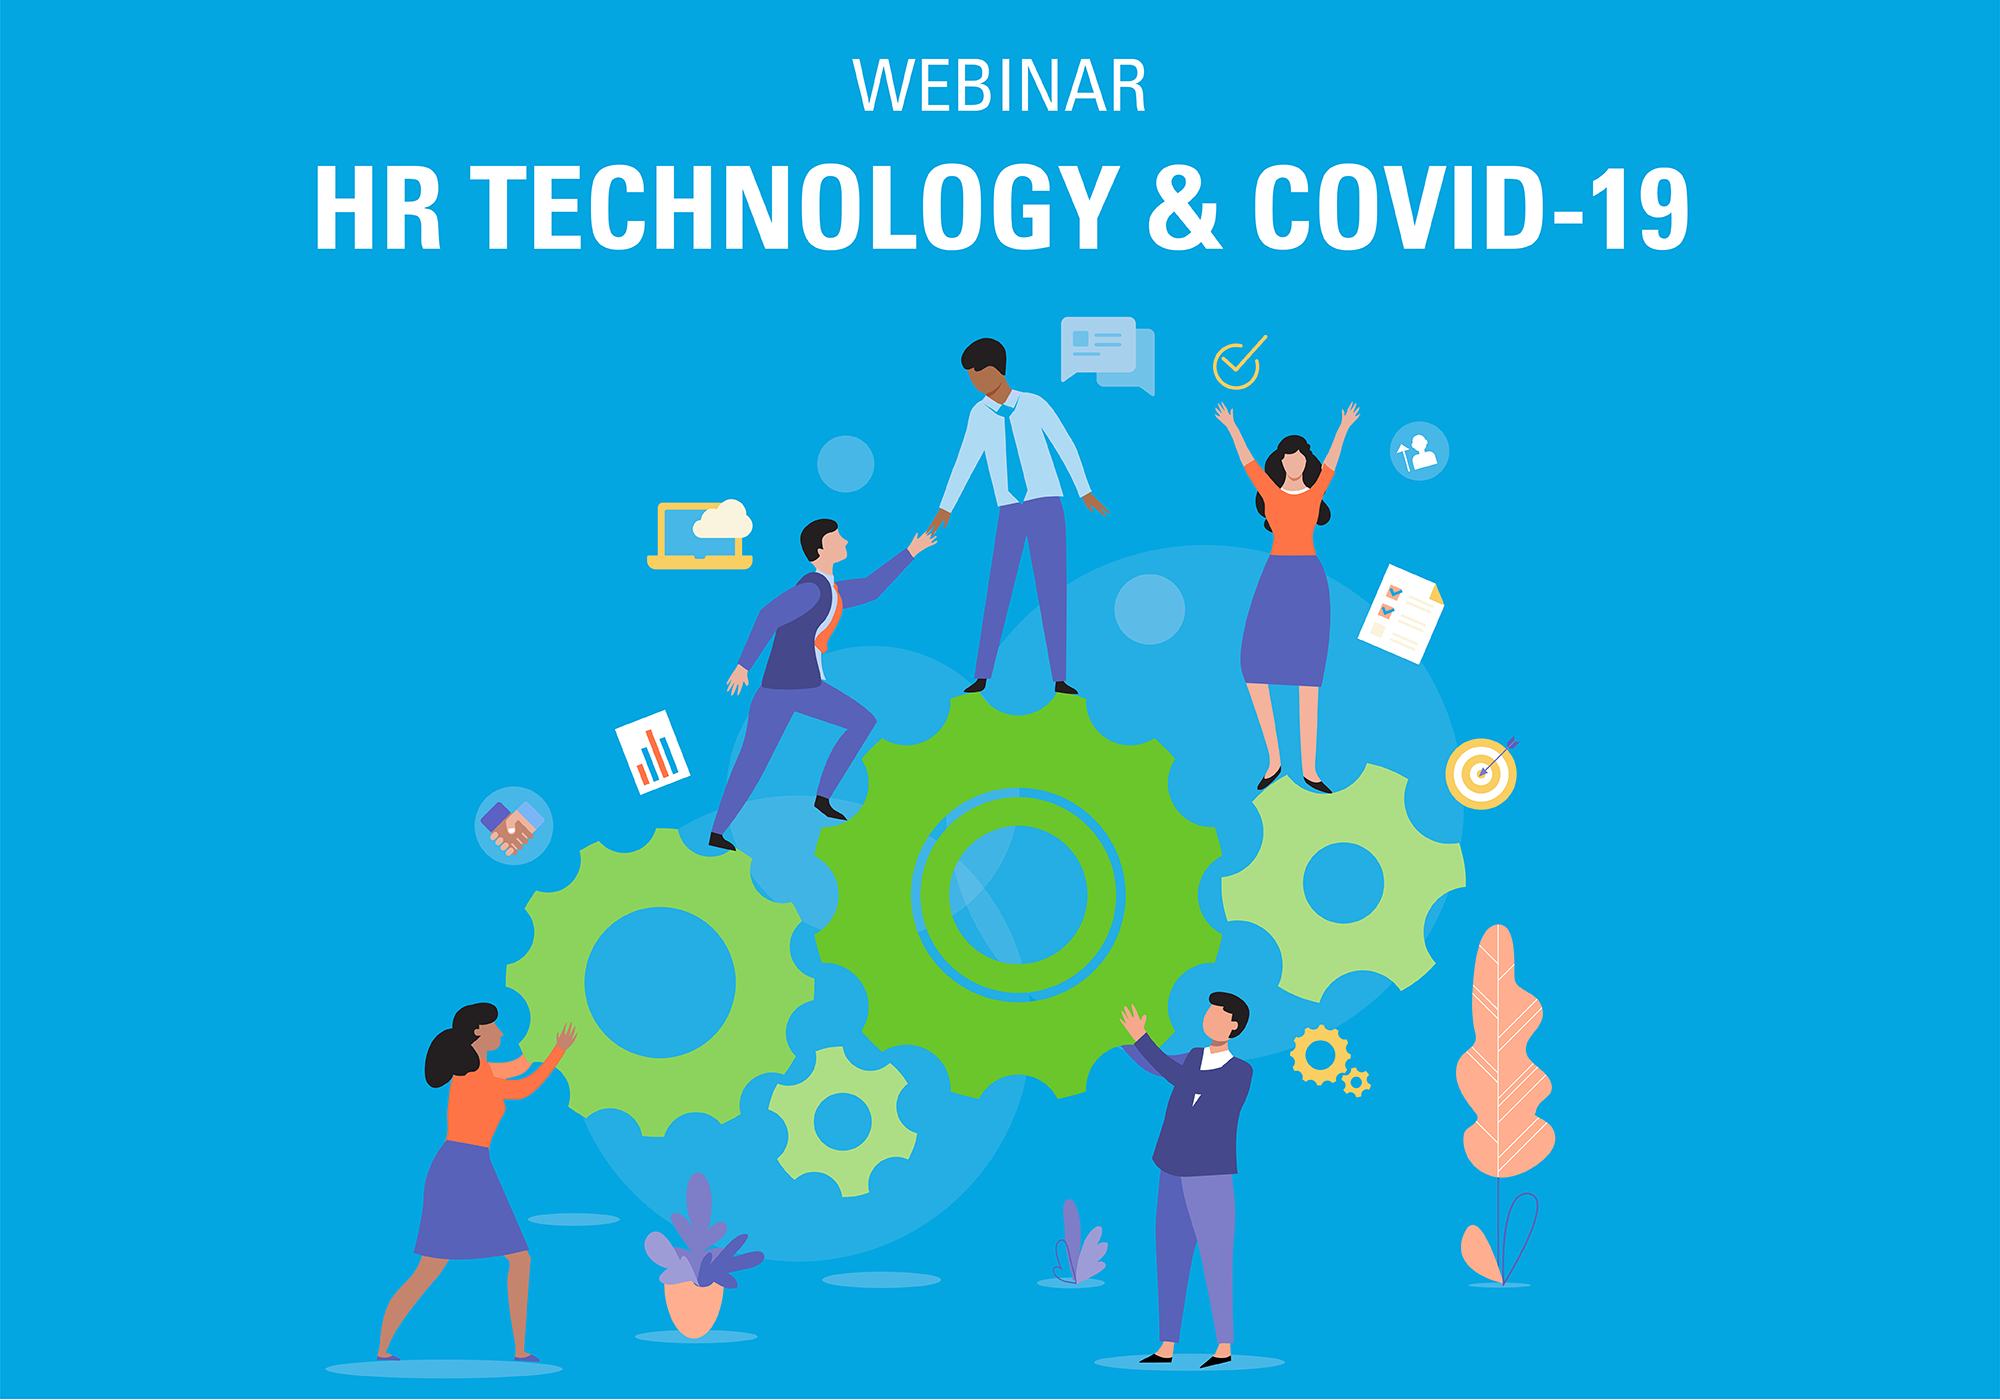 HR Technology & COVID-19